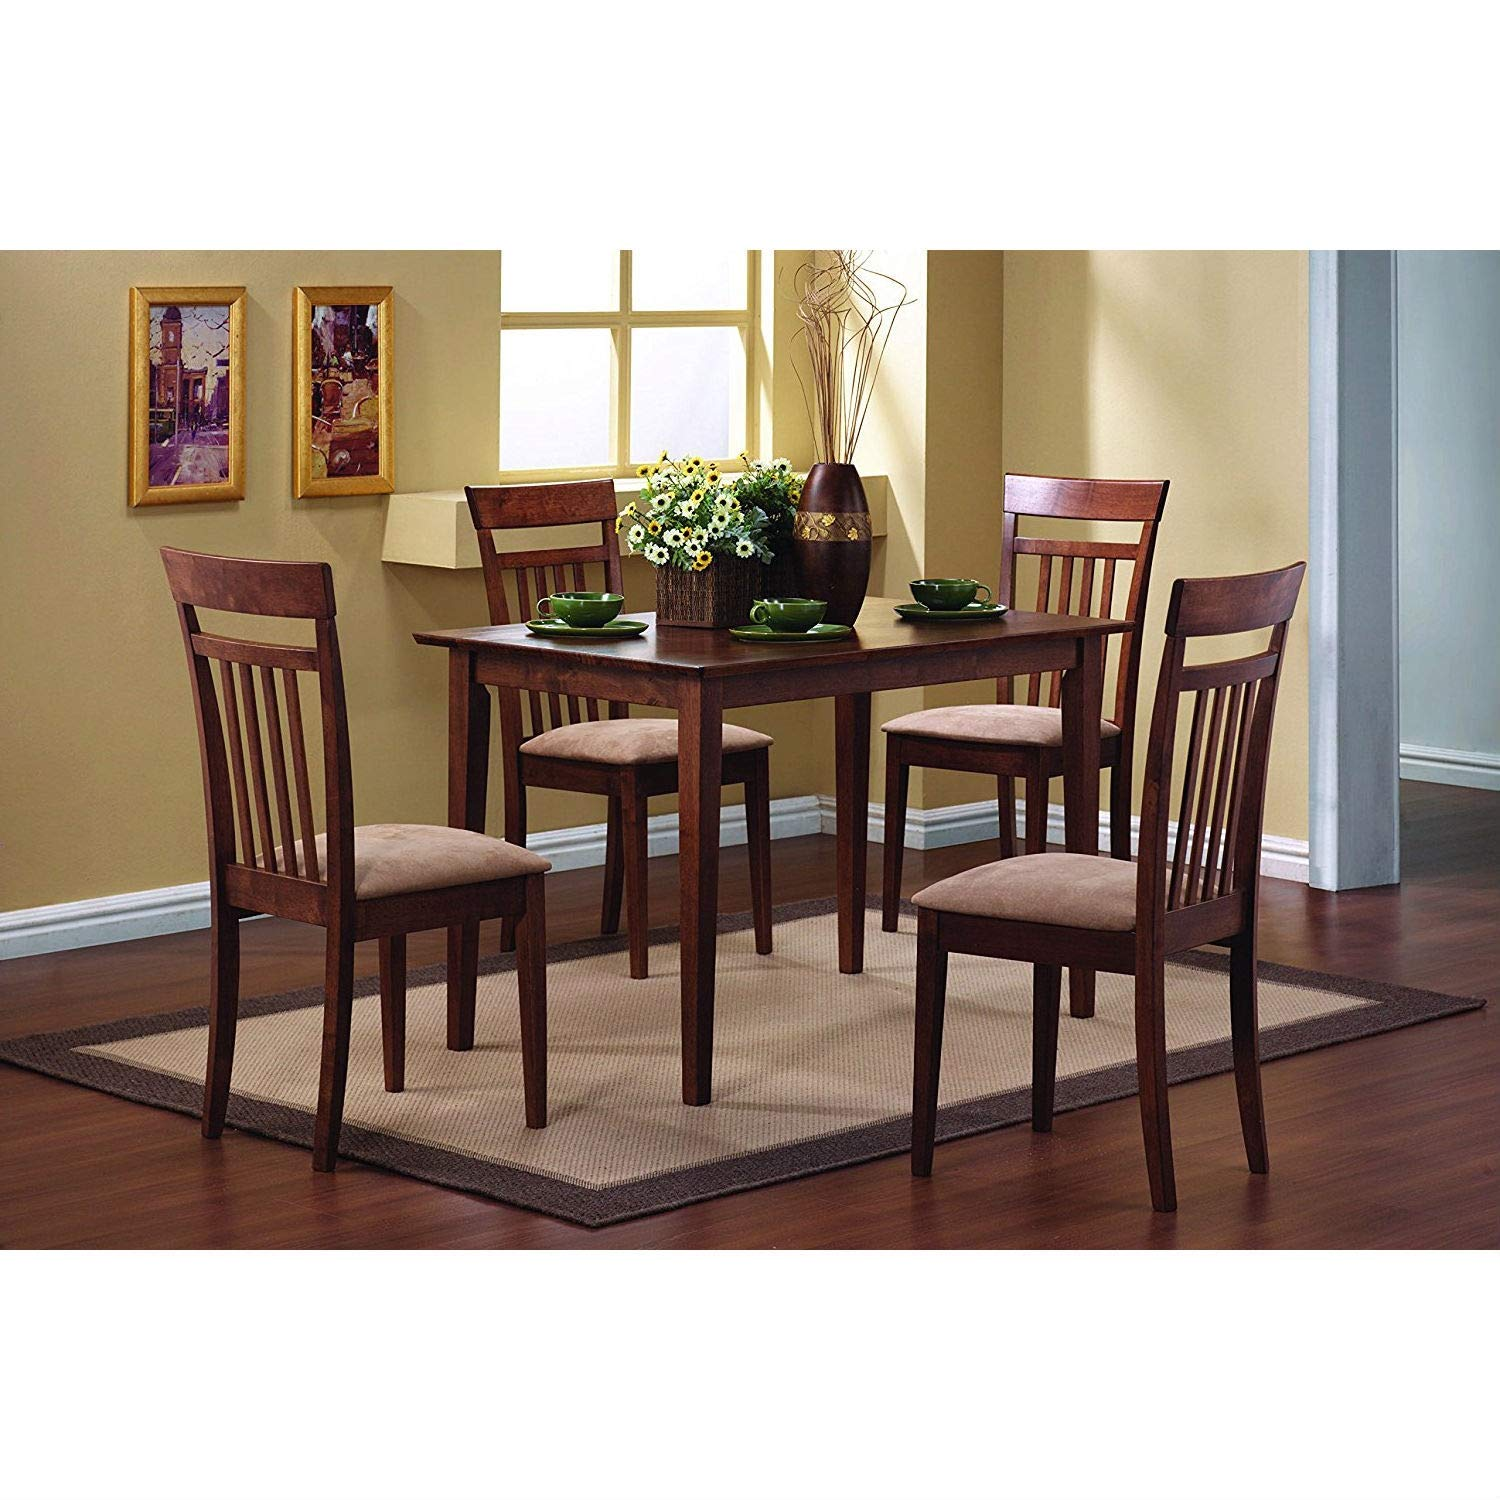 BeUniqueToday Classic 5-Piece Dining Set with Rectangular Table and 4 Chairs in Chestnut Wood Finish, Rectangular Table with Straight Clean Lines, and Square Tapered Leg, Crafted from Asian Hardwood